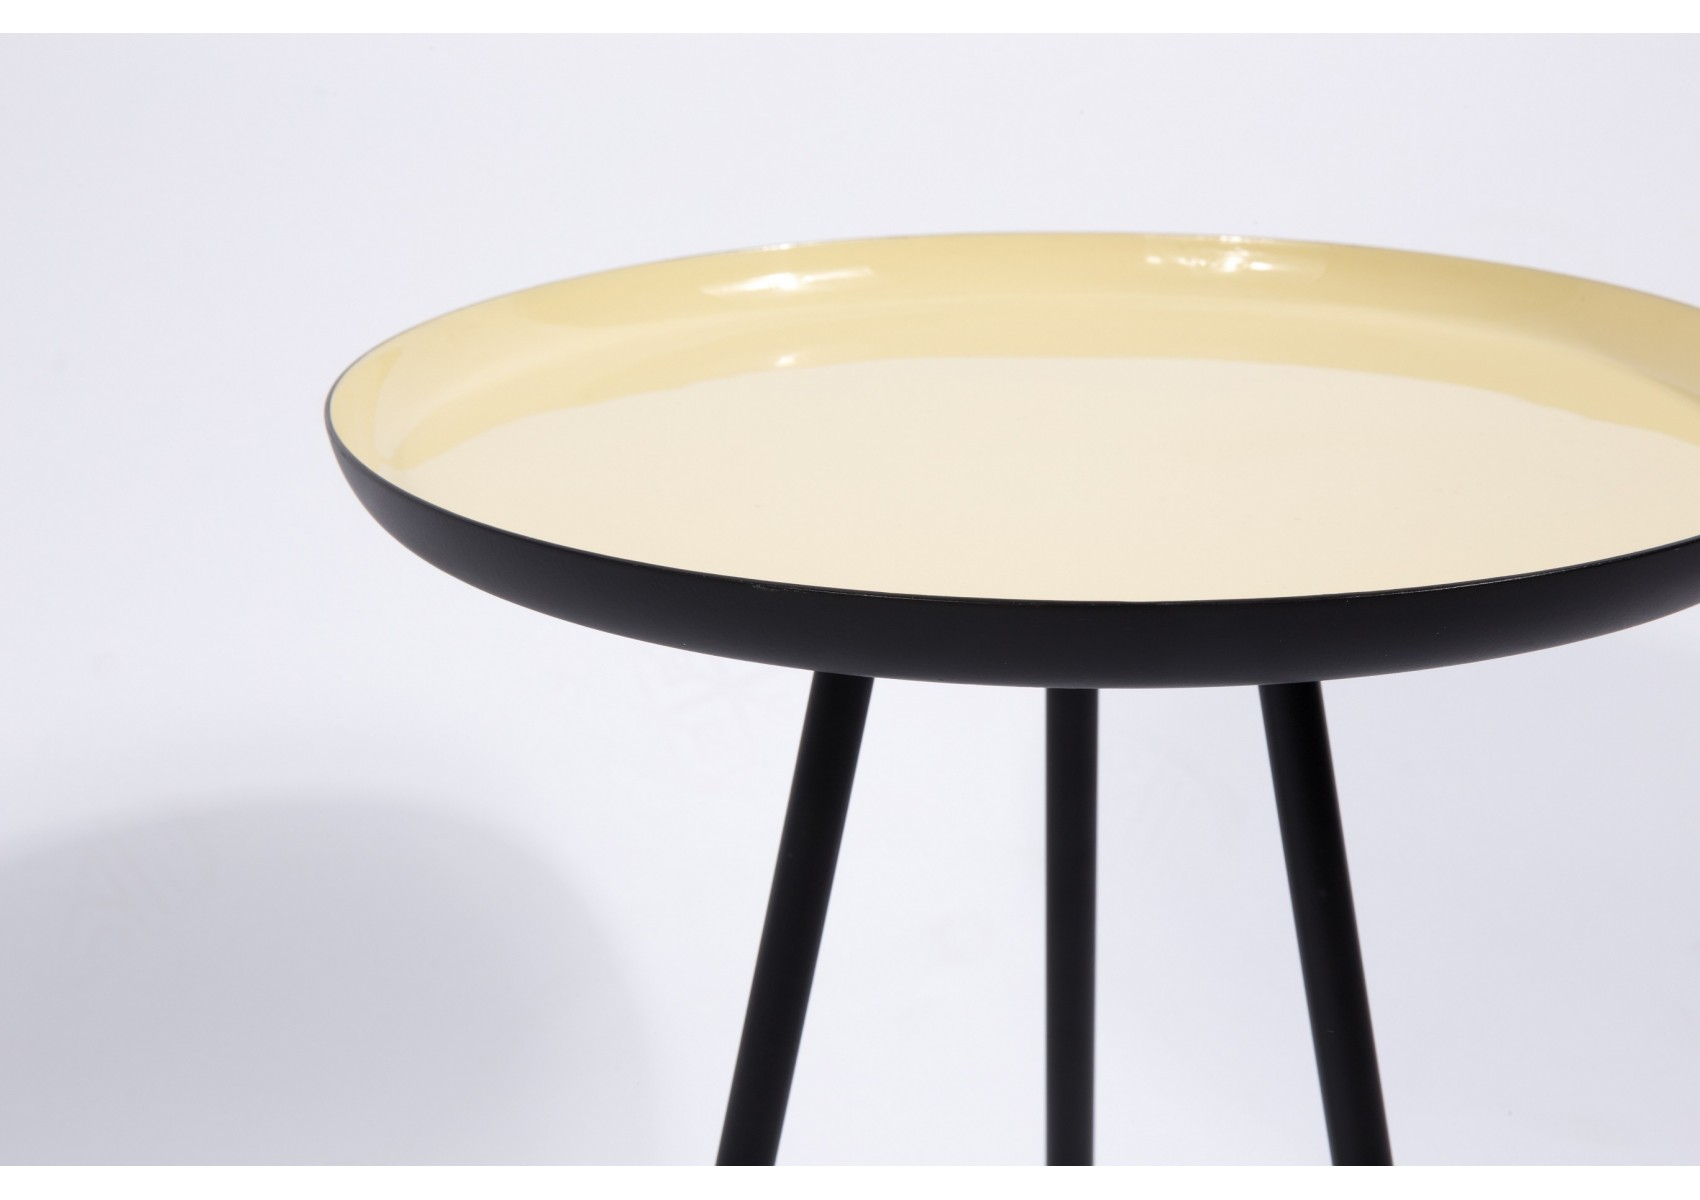 Table Basse Couleur 3 Tables Basses Enamel En 3 Couleurs Pastel Design